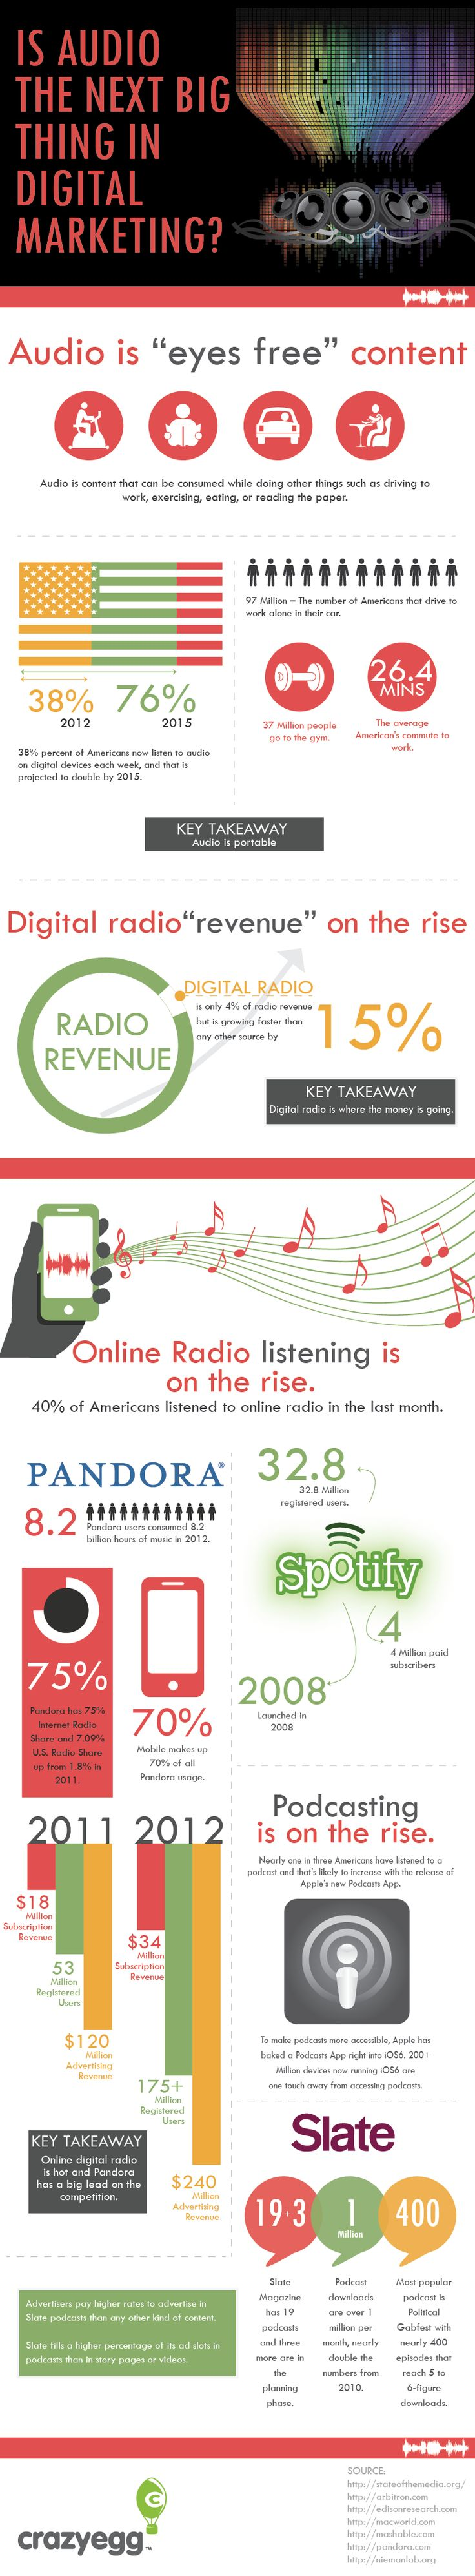 Is Audio The Next Big Thing In Digital Marketing? http://www.turntherecordover.com/2013/03/is-audio-the-next-big-thing-in-digital-marketing/